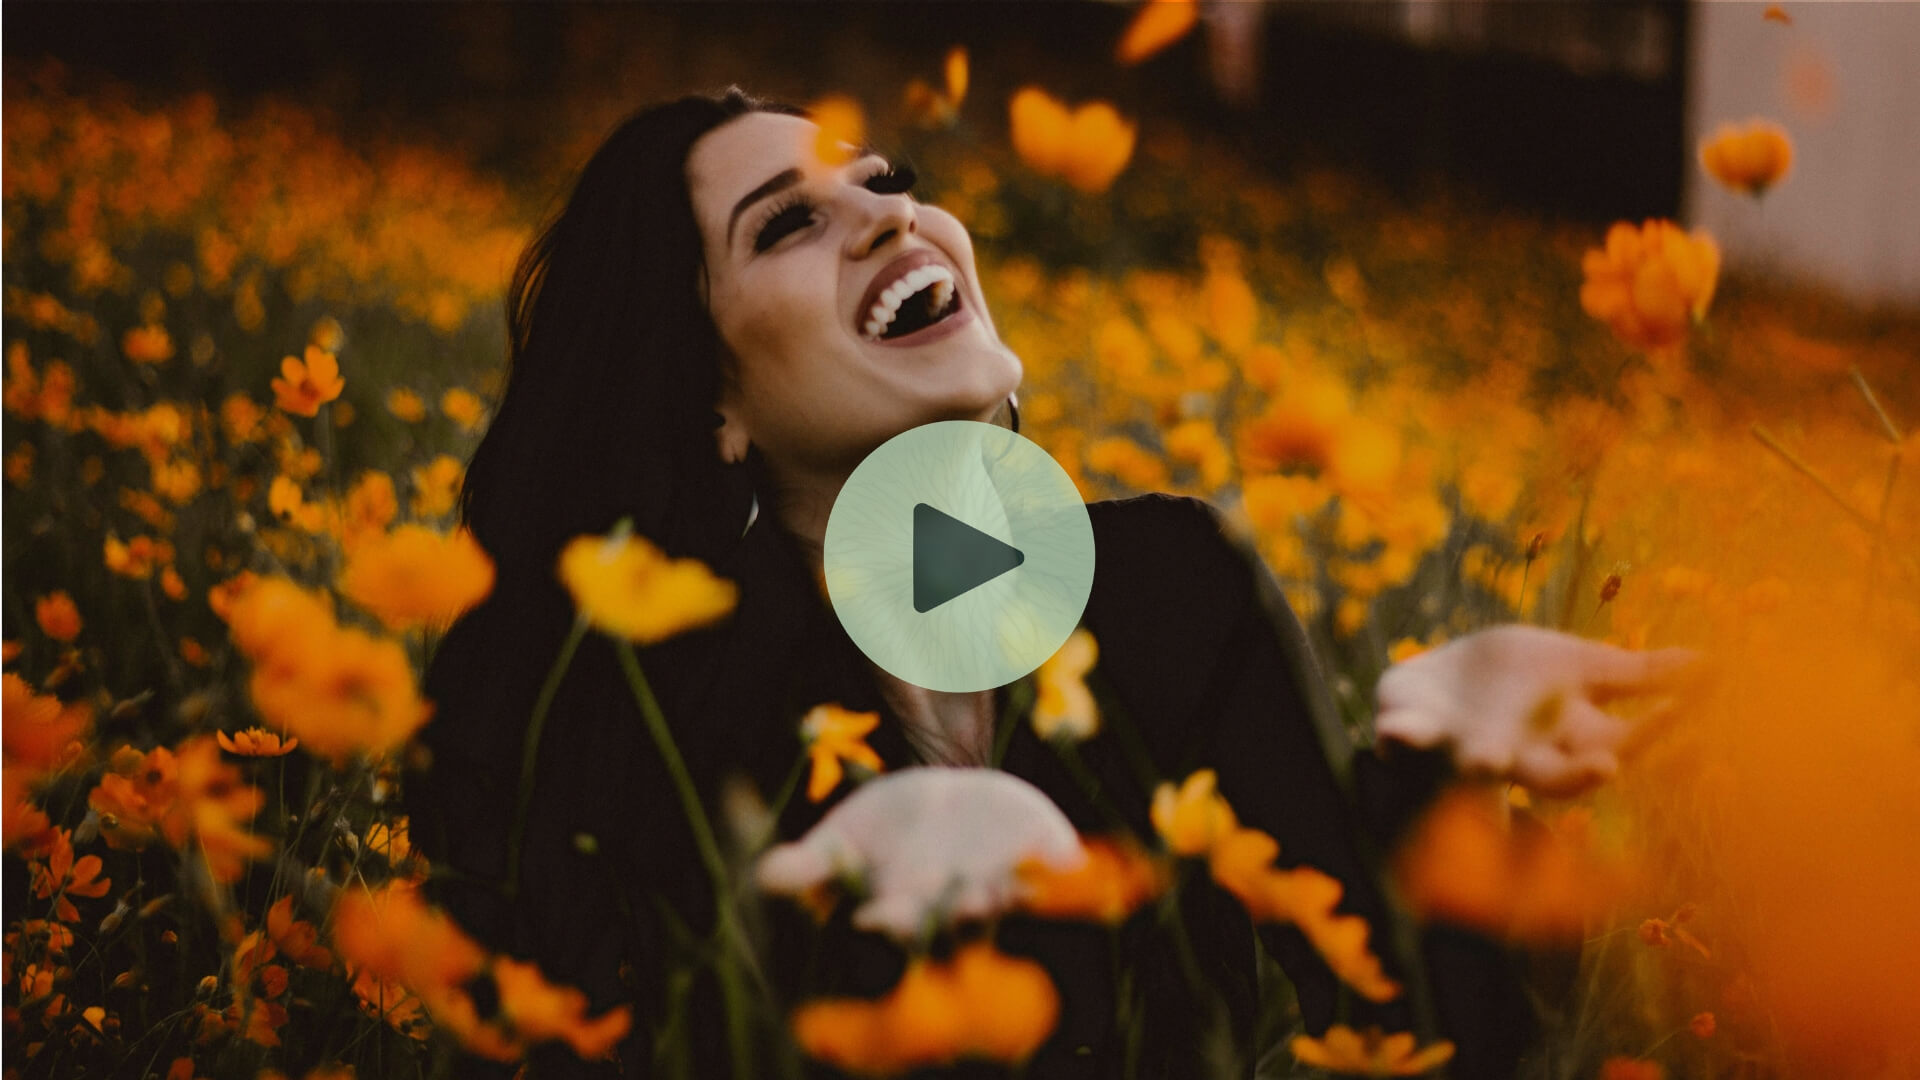 How To Get Unstuck In Life (4 Simple Steps!) ⋆ Christina Lopes